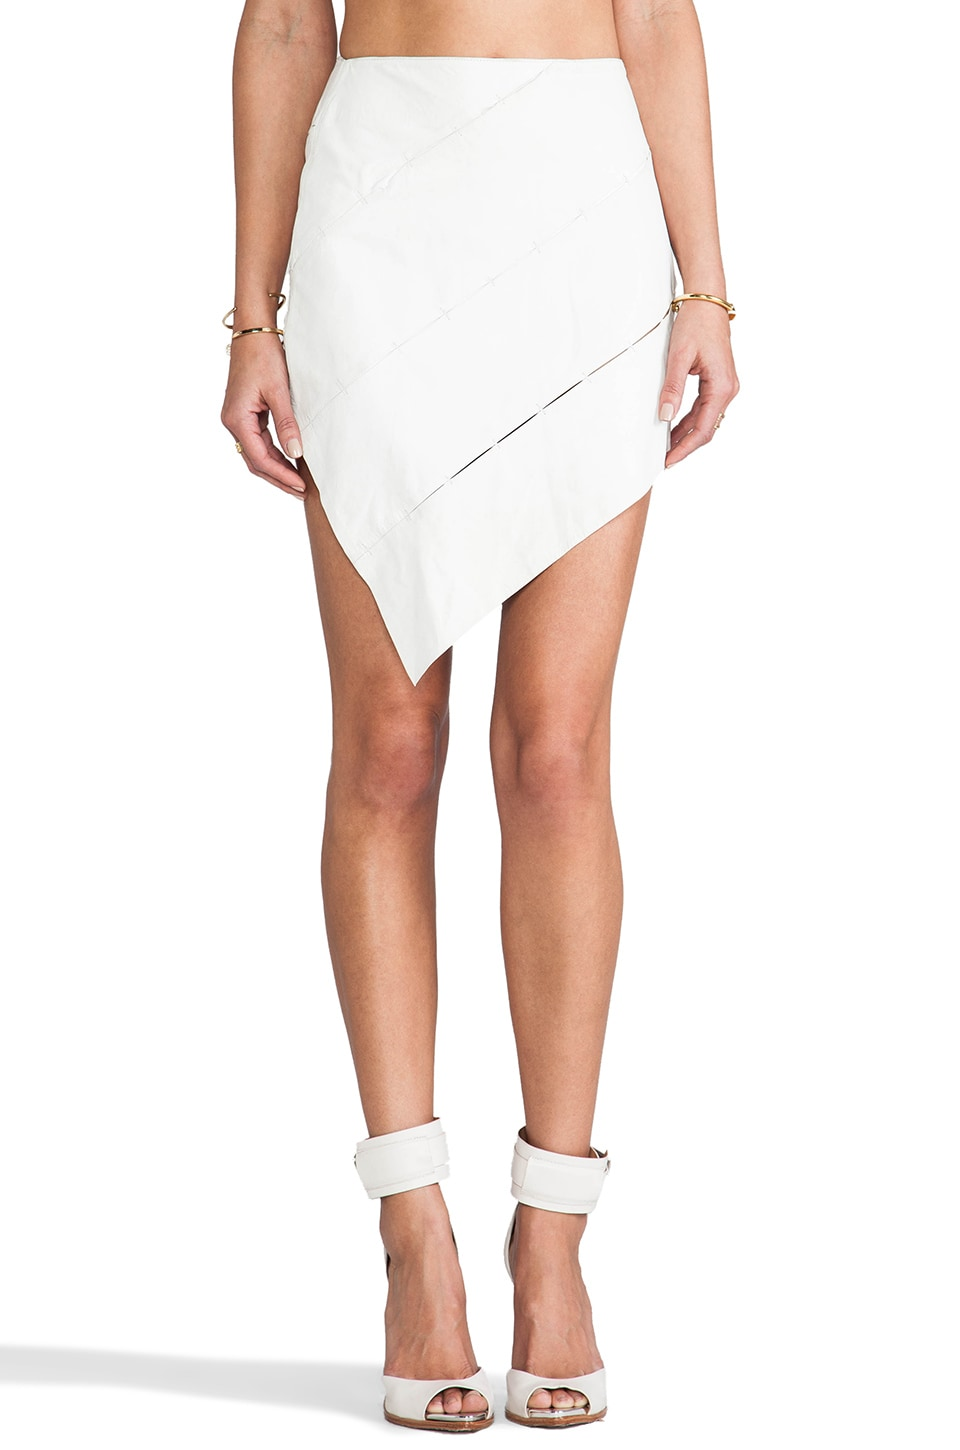 Friend of Mine Imagination Leather Skirt in White